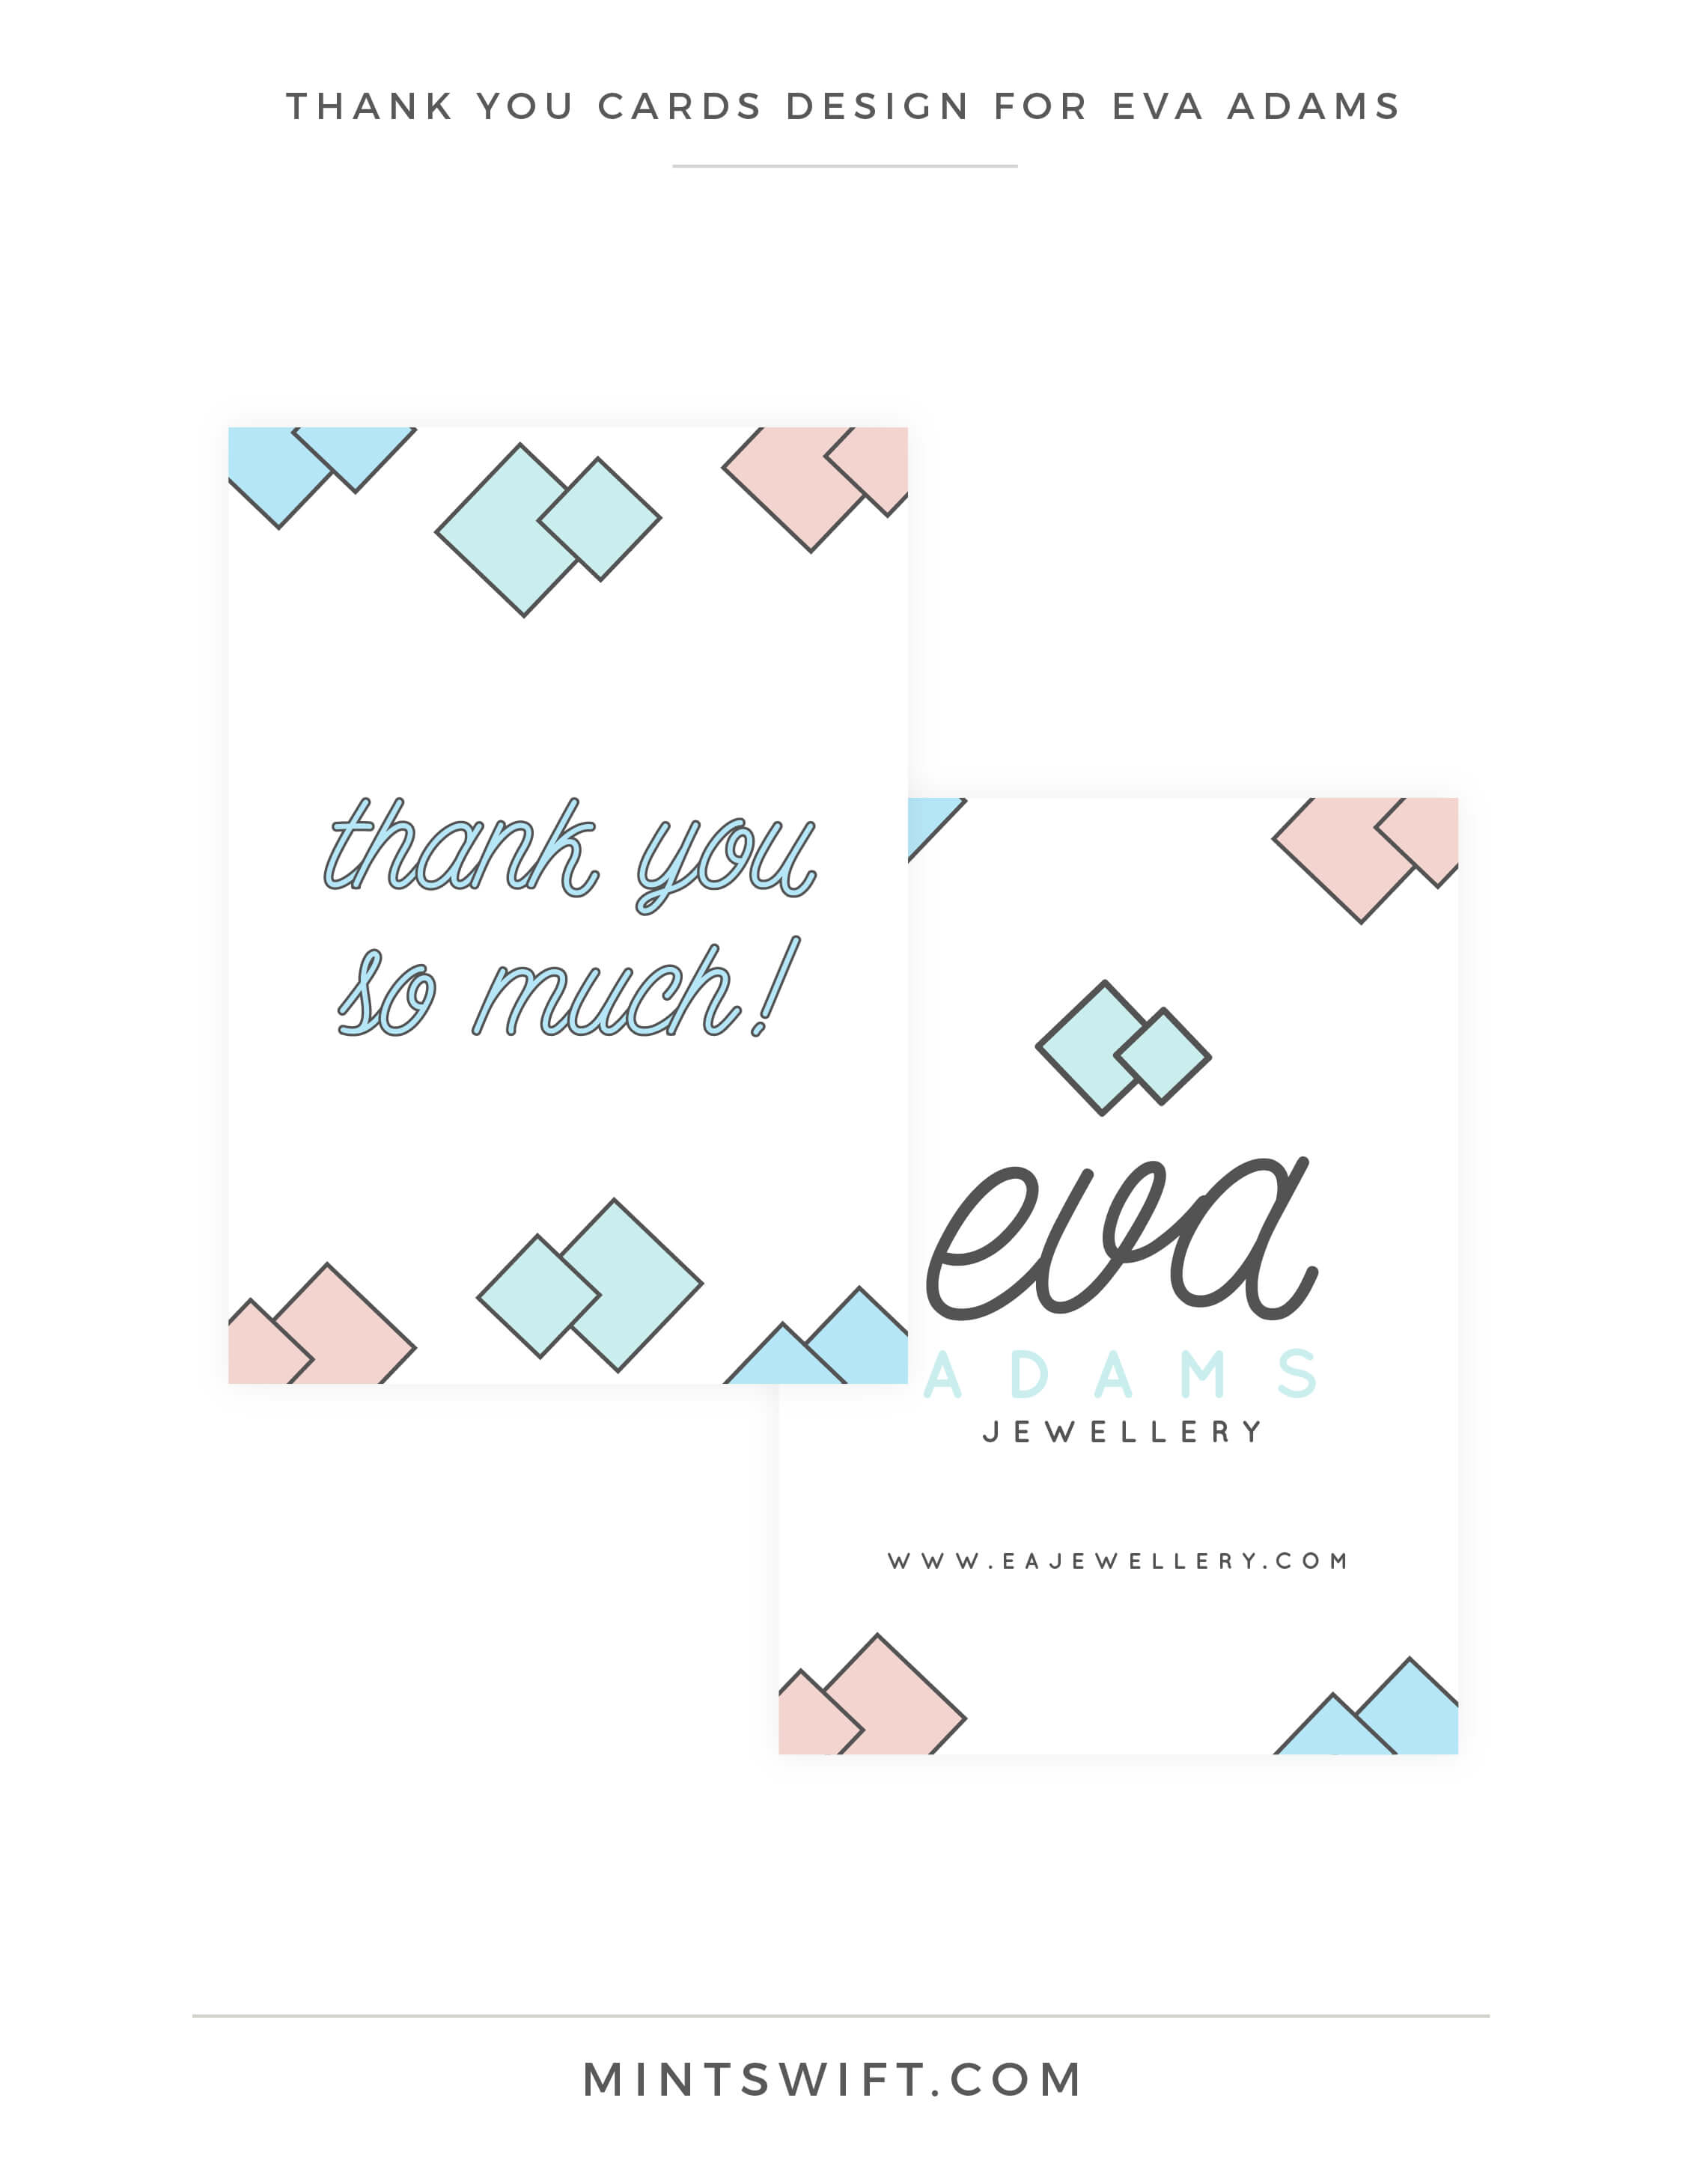 Eva Adams - Thank you cards design - MintSwift